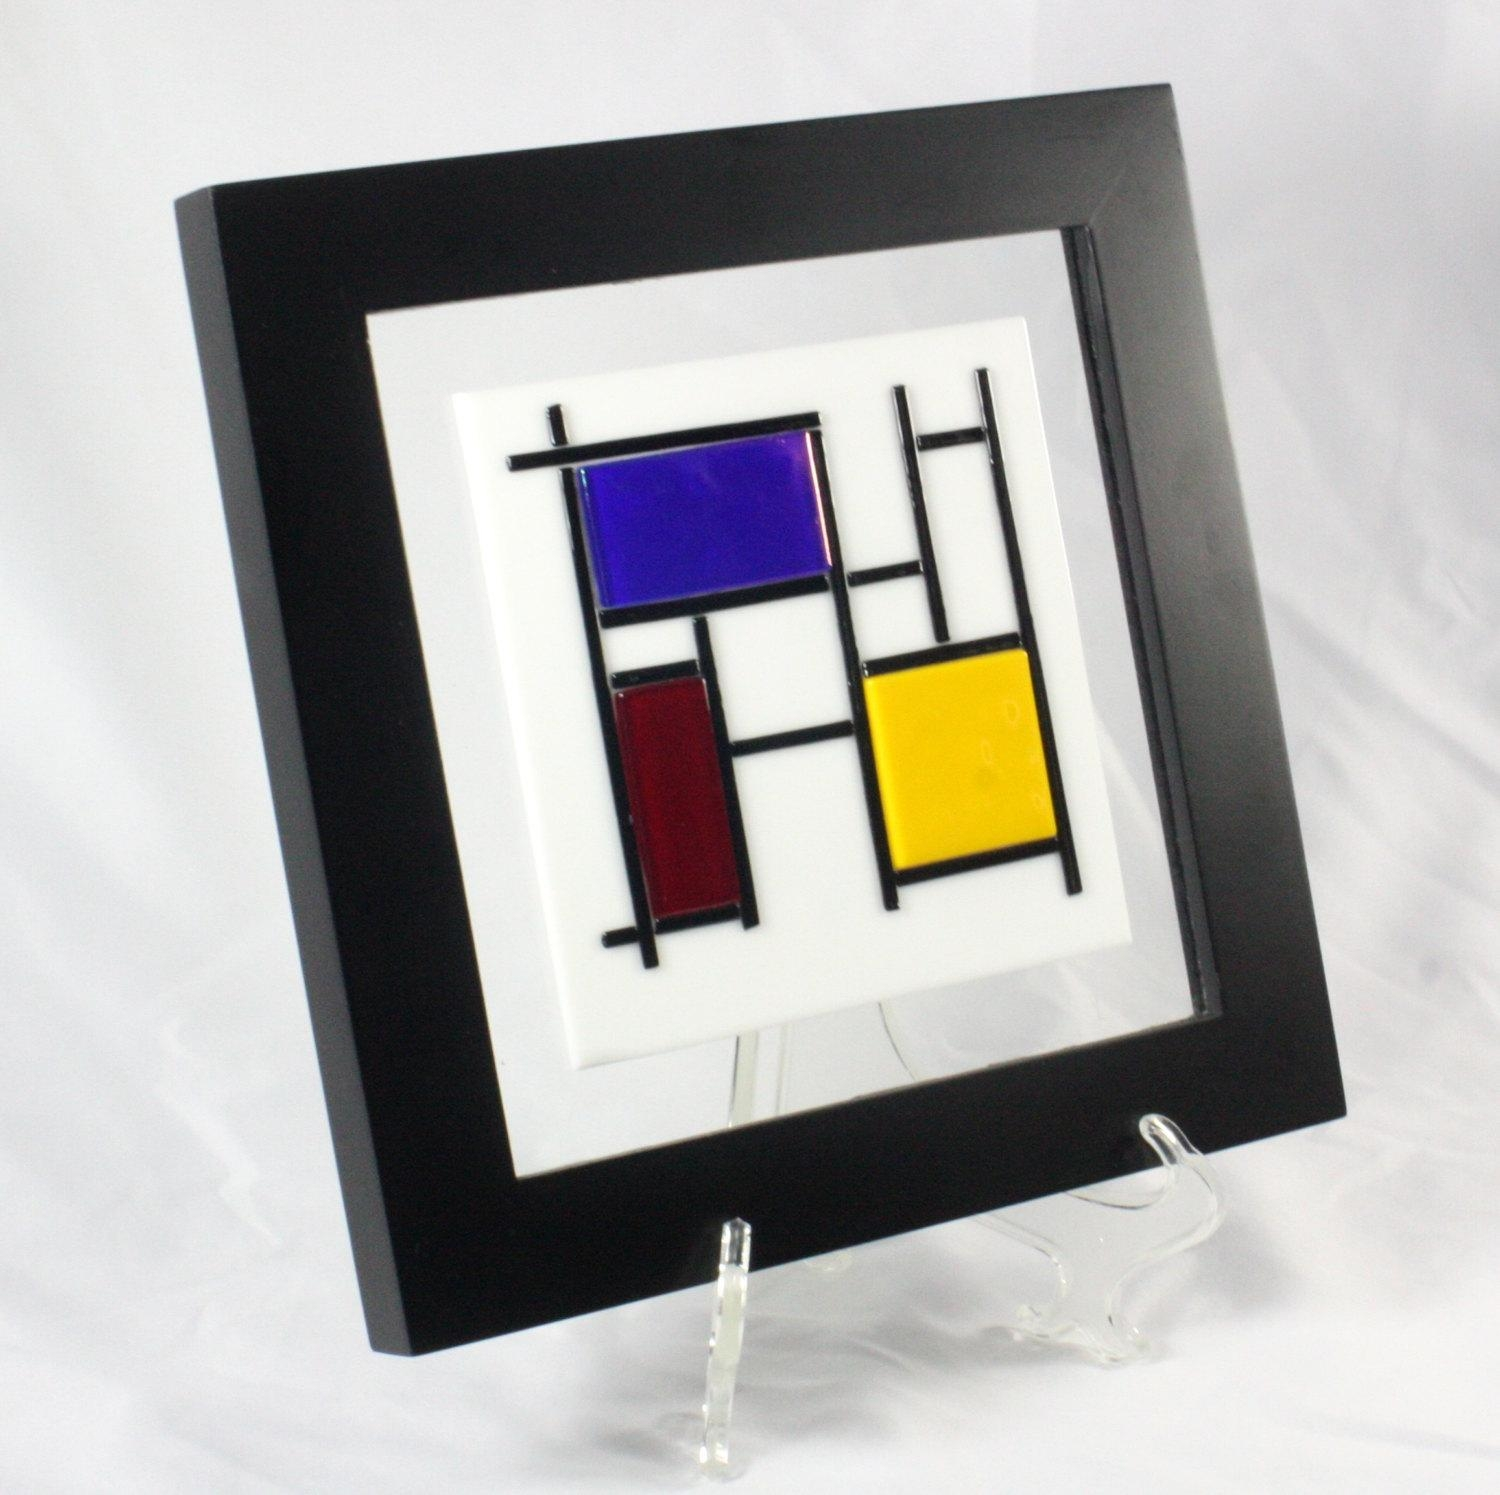 Fused Glass Wall Art Archives – Jm Fusions With Regard To Fused Glass Wall Art (View 19 of 20)